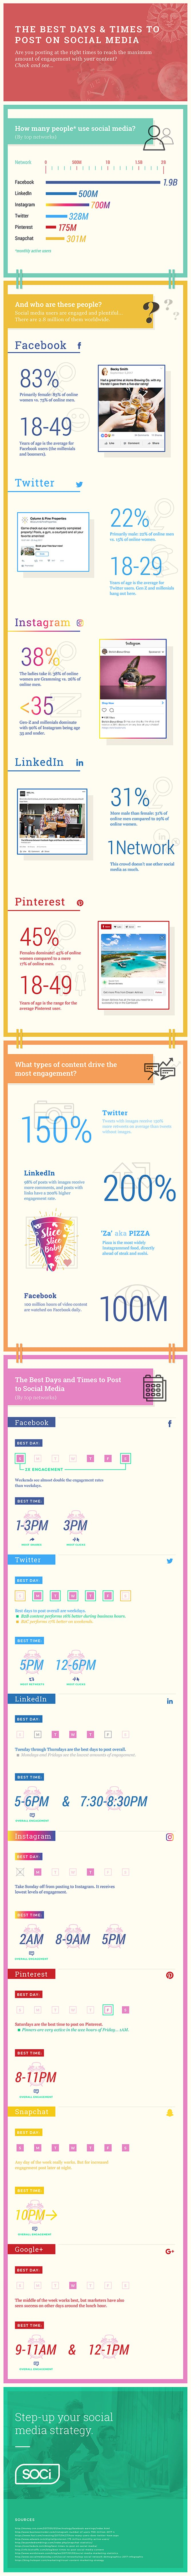 Best-Days-and-Times-to-Post-to-Social-Media-Infographic.jpg